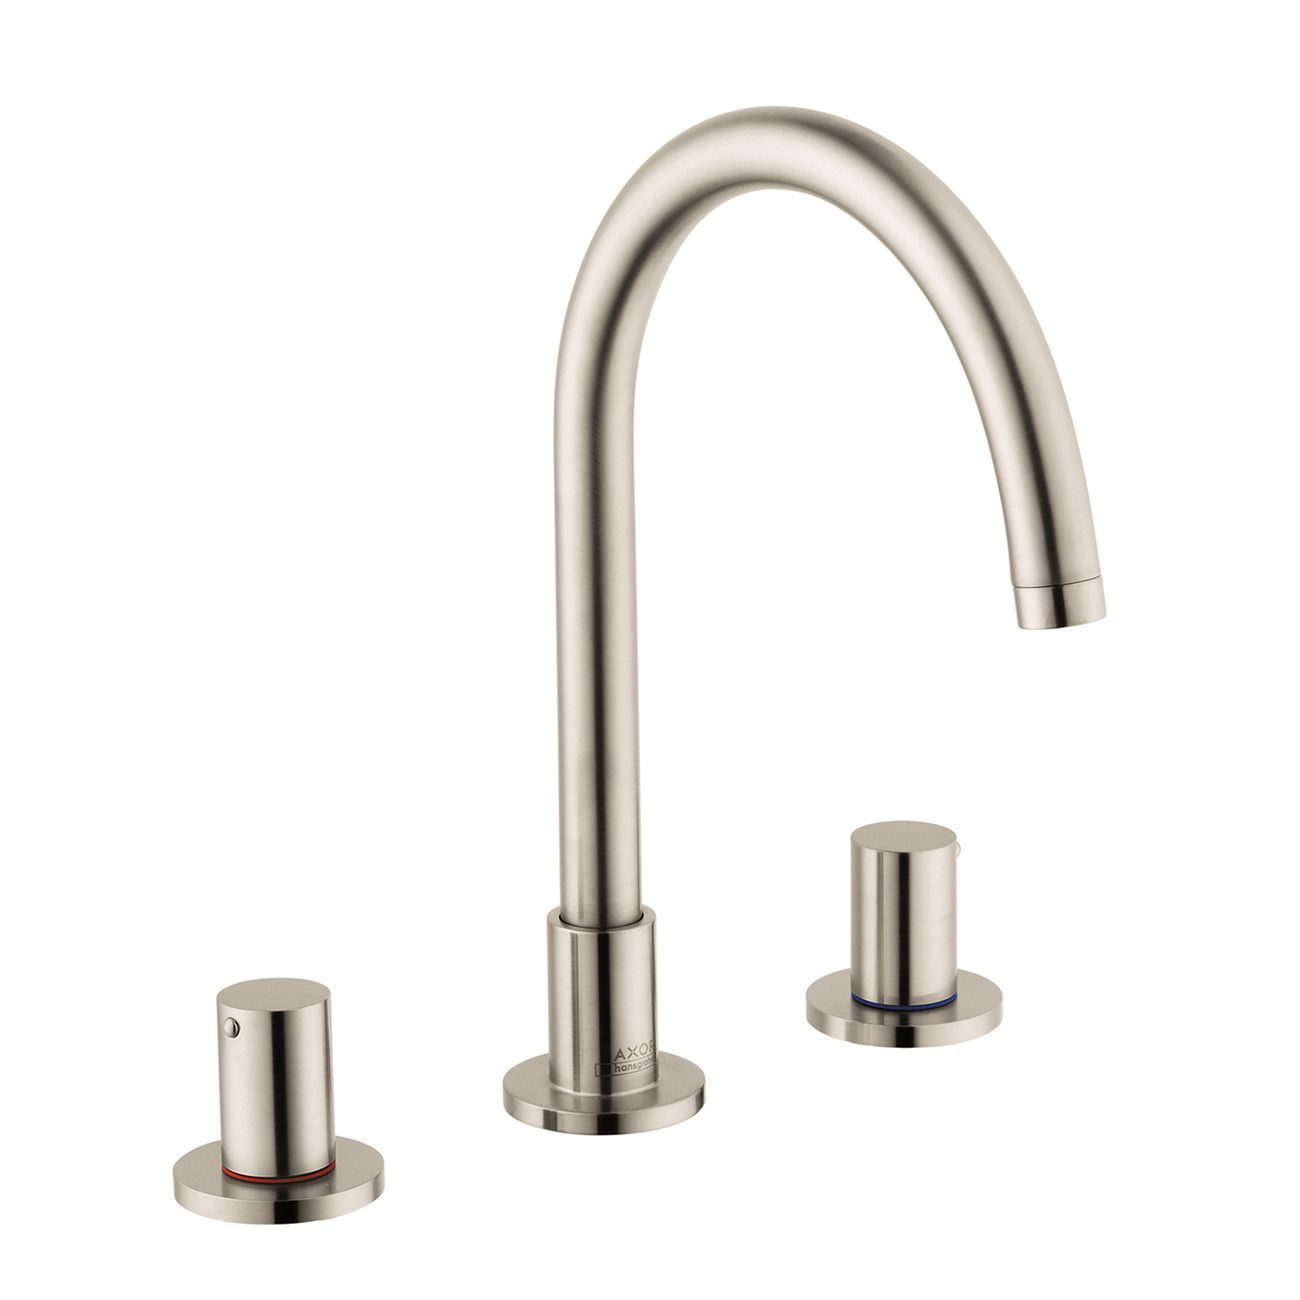 finest with faucets instructions c bath reviews faucet hole nickel talis installation hansgrohe widespread bathroom lavatory single brushed